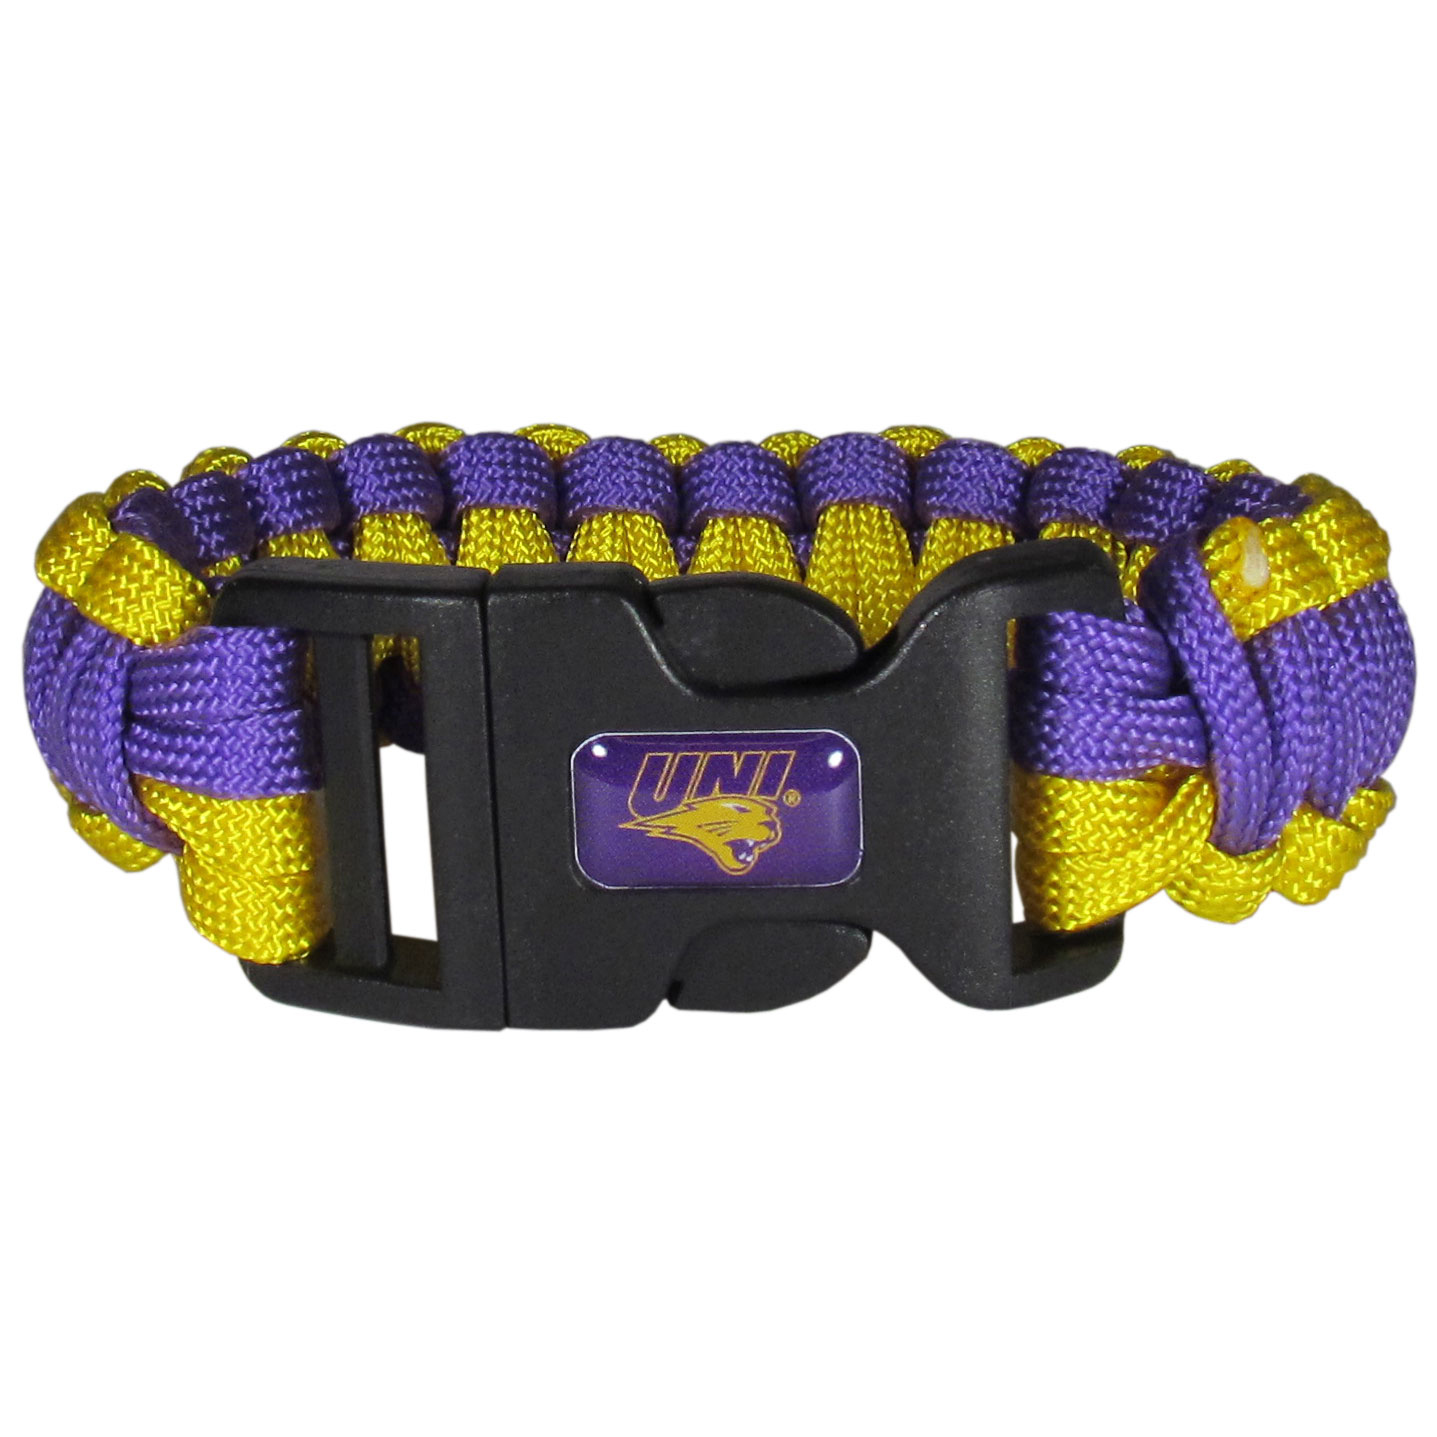 Northern Iowa Panthers Survivor Bracelet - Our functional and fashionable Northern Iowa Panthers survivor bracelets contain 2 individual 300lb test paracord rated cords that are each 5 feet long. The team colored cords can be pulled apart to be used in any number of emergencies and look great while worn. The bracelet features a team emblem on the clasp.